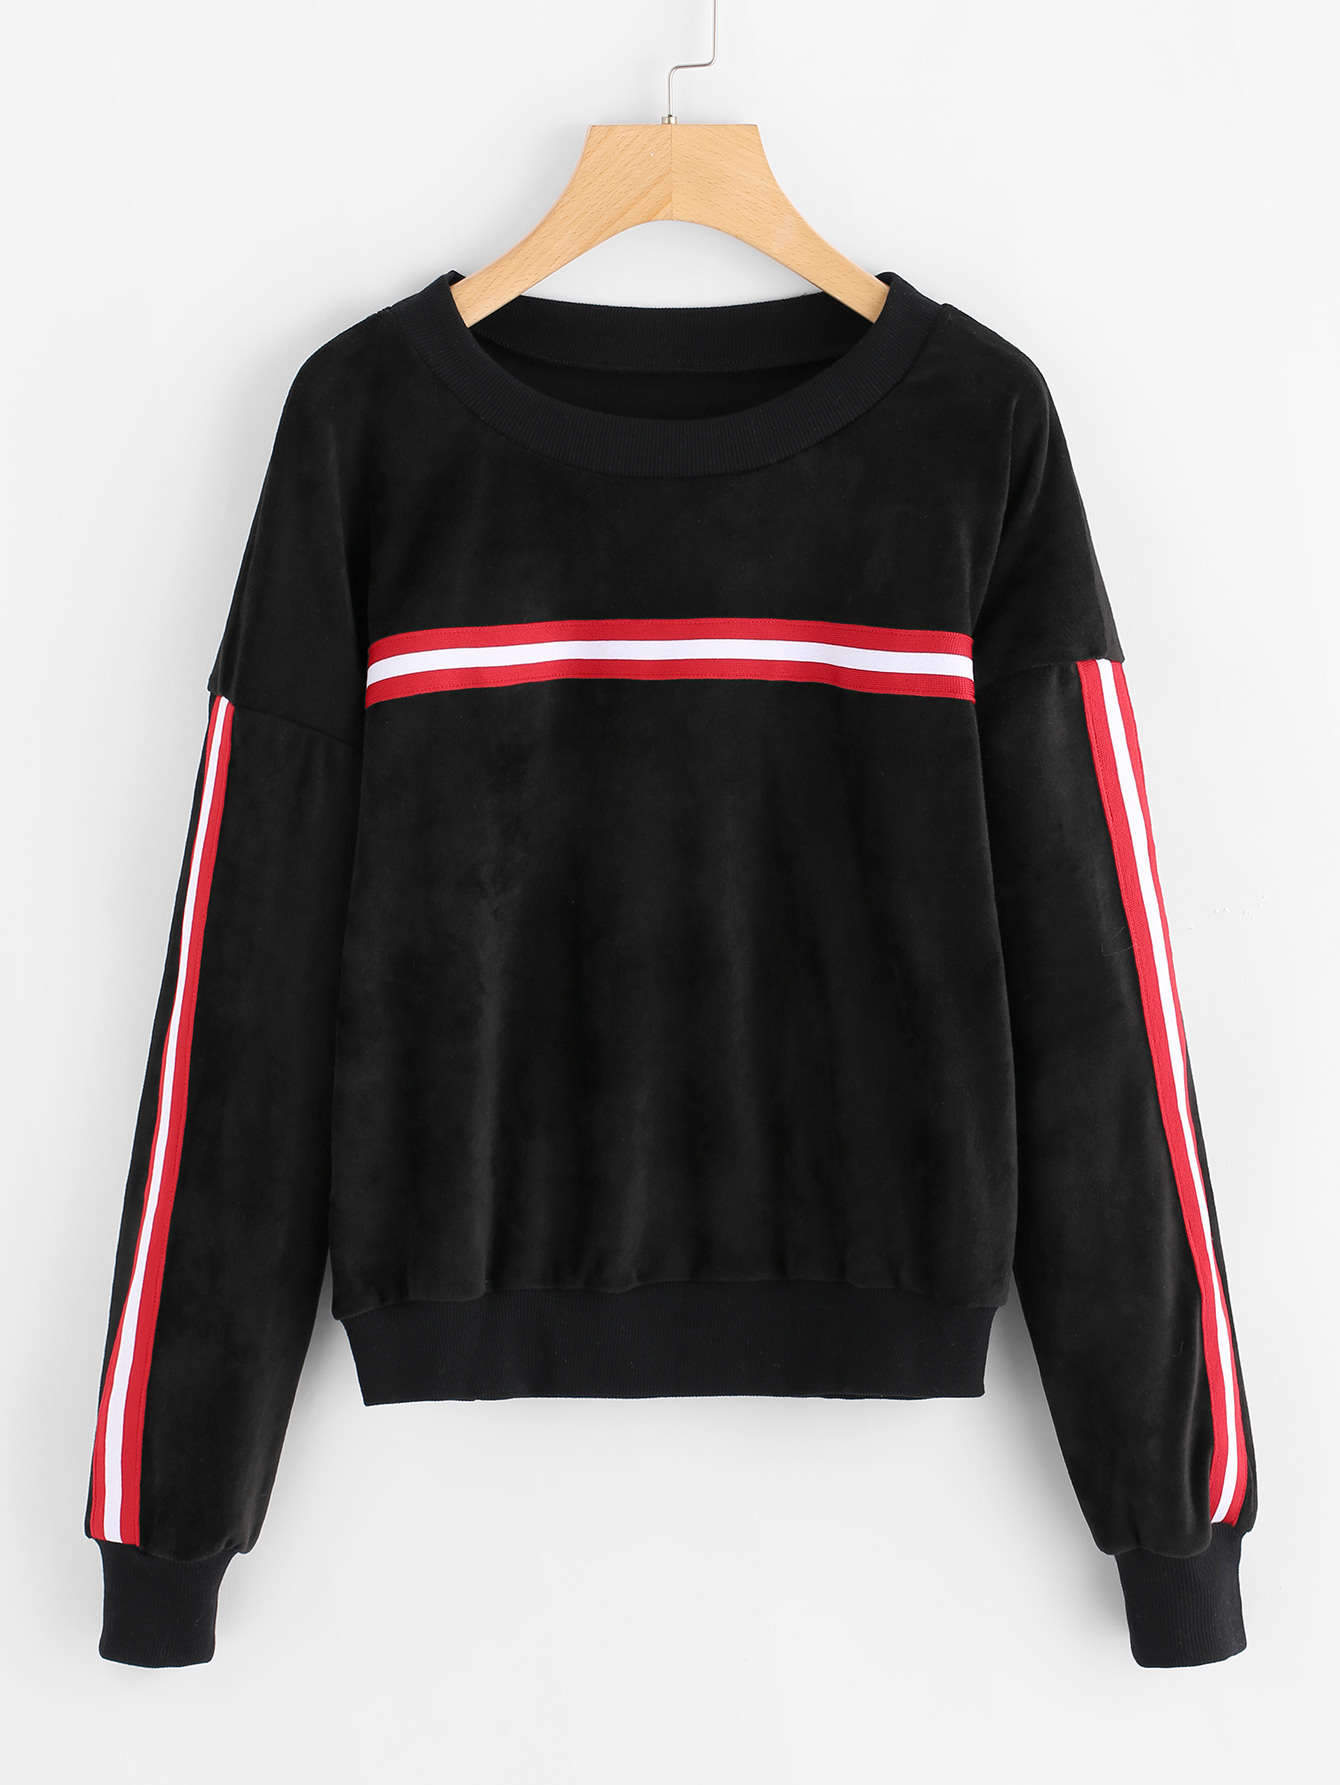 Stripe Contrast Drop Shoulder Velvet Sweatshirt самокат 21st scooter skl l 021 1